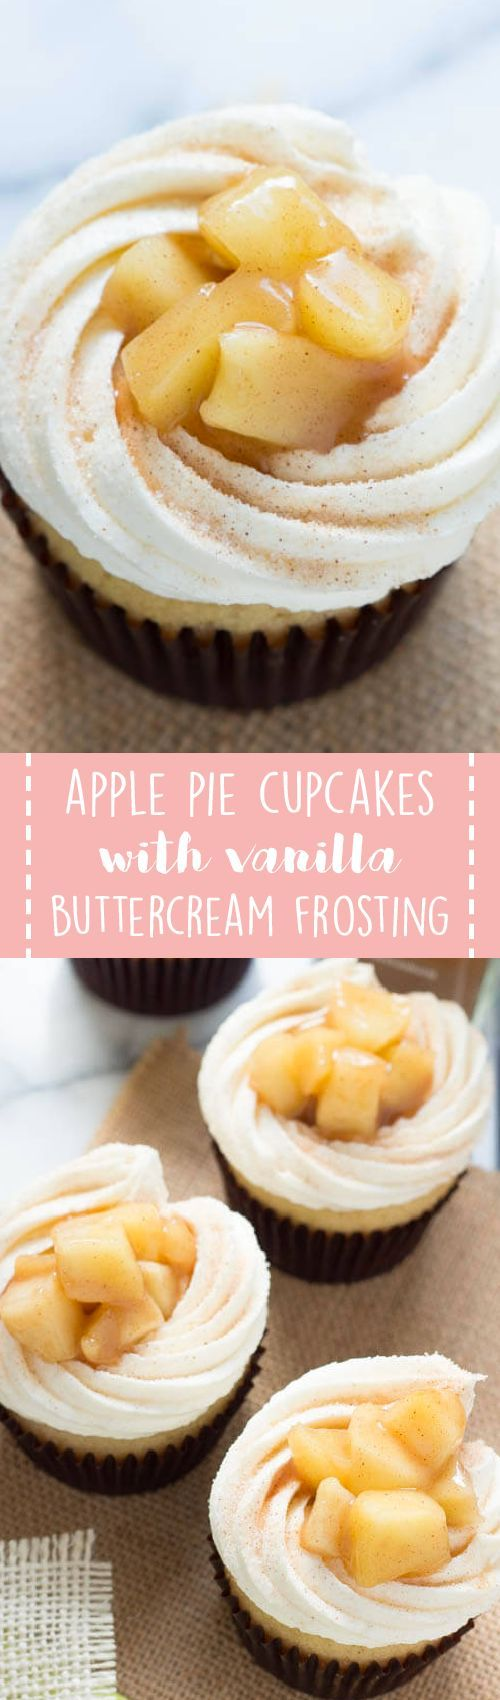 Apple Pie Cupcakes with Vanilla Buttercream Frosting are creamy, sweet and surprisingly easy! Homemade cupcakes don't get much better than these!